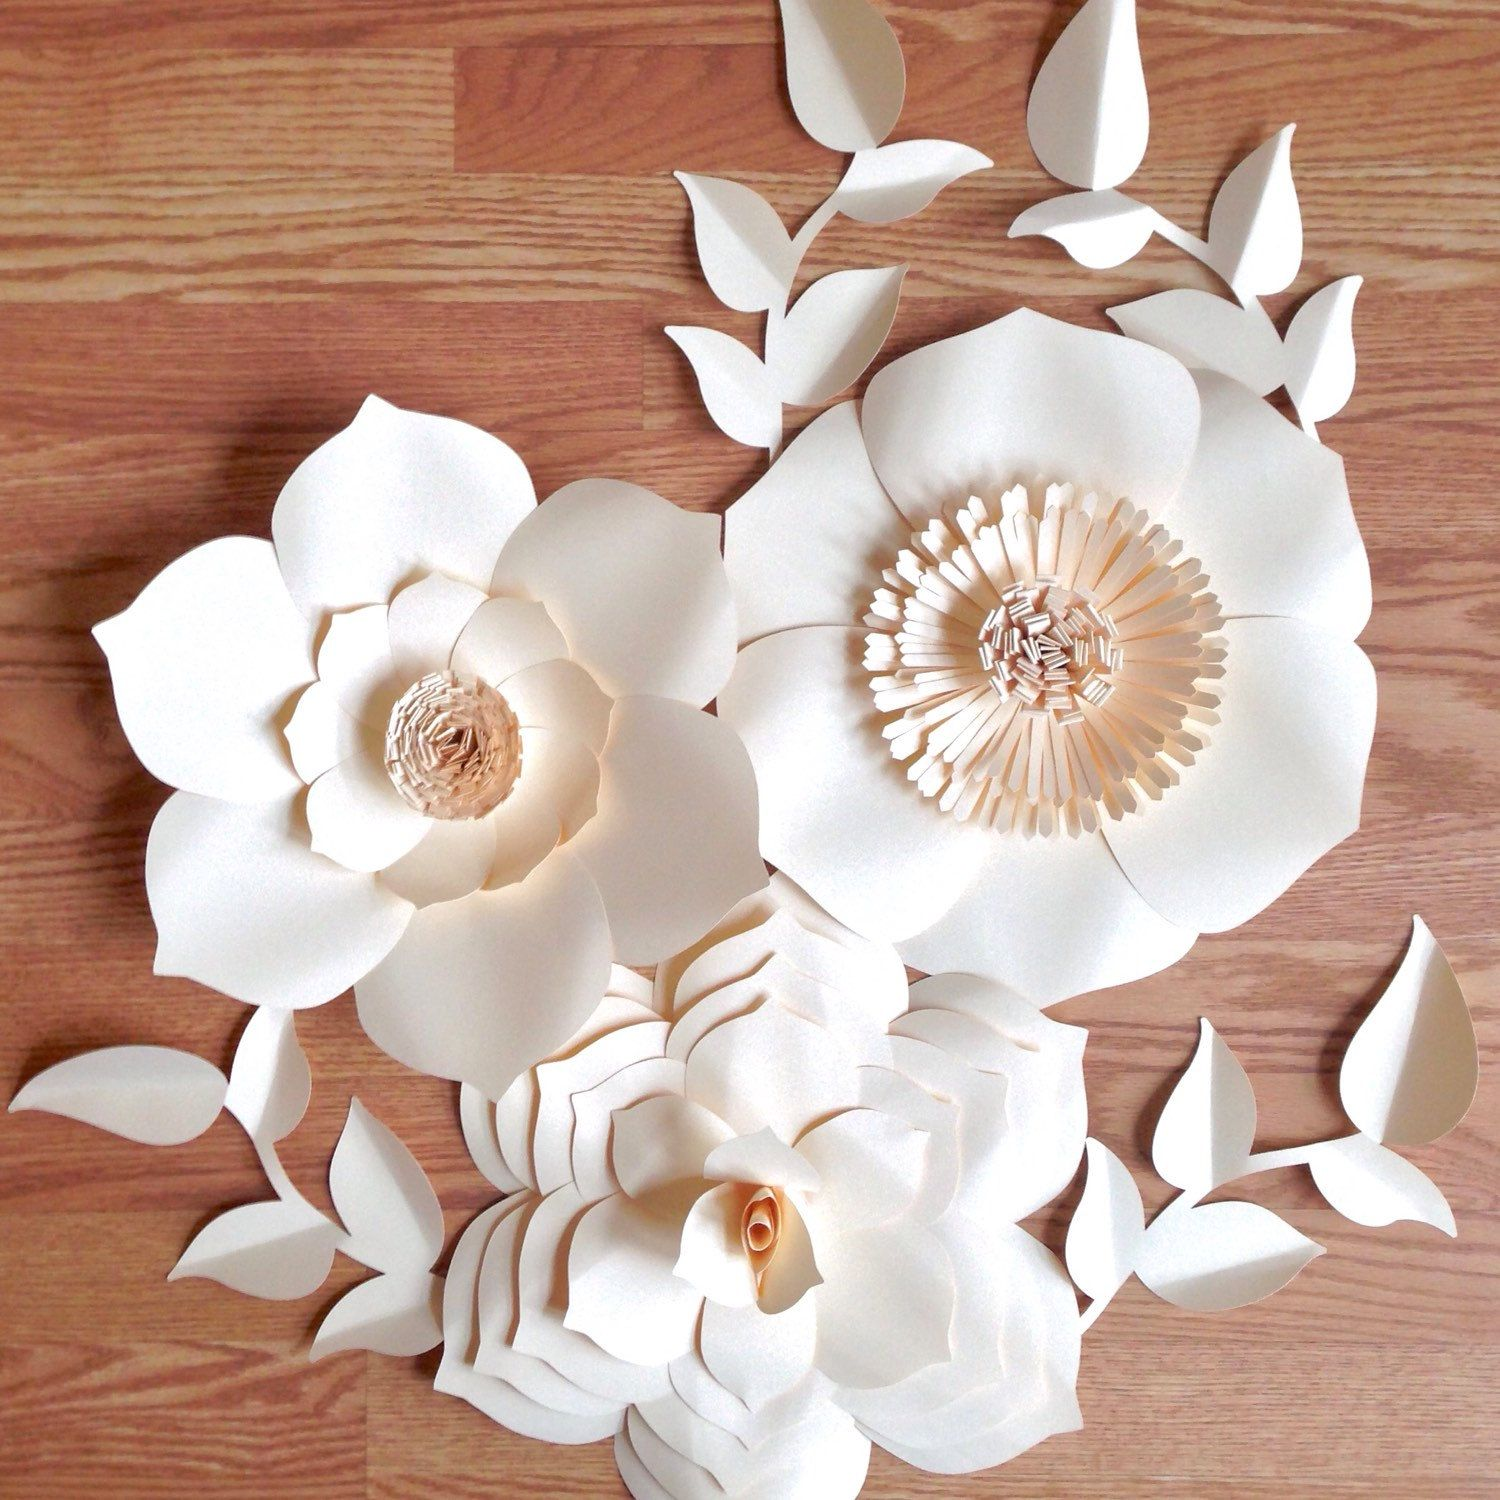 Diy paper flower wedding decorations  Gorgeous paper flower backdrop would look stunning for your wedding